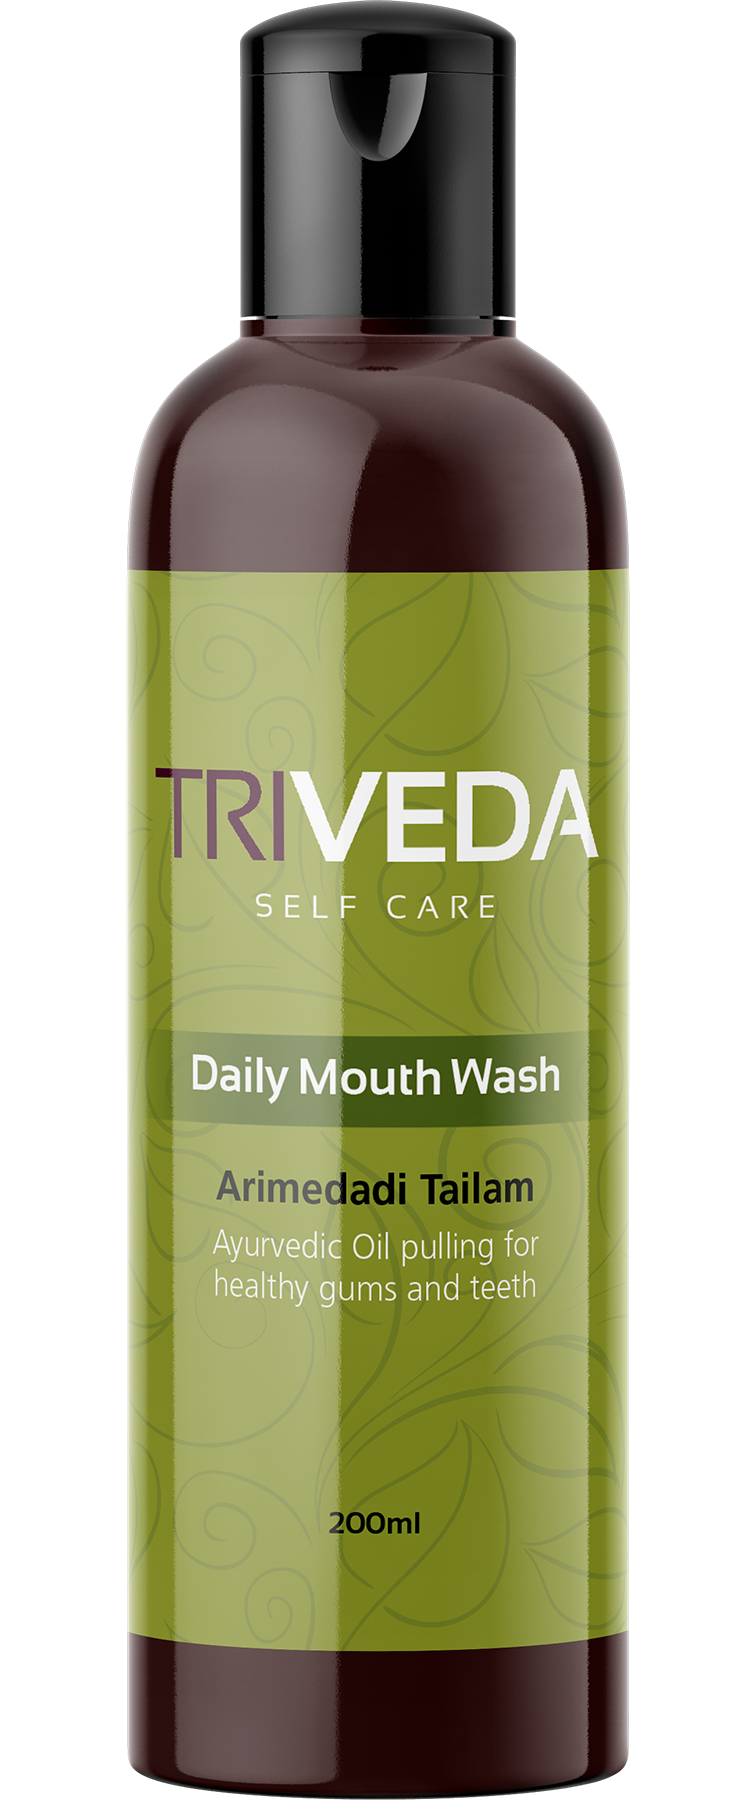 Daily Mouth Wash